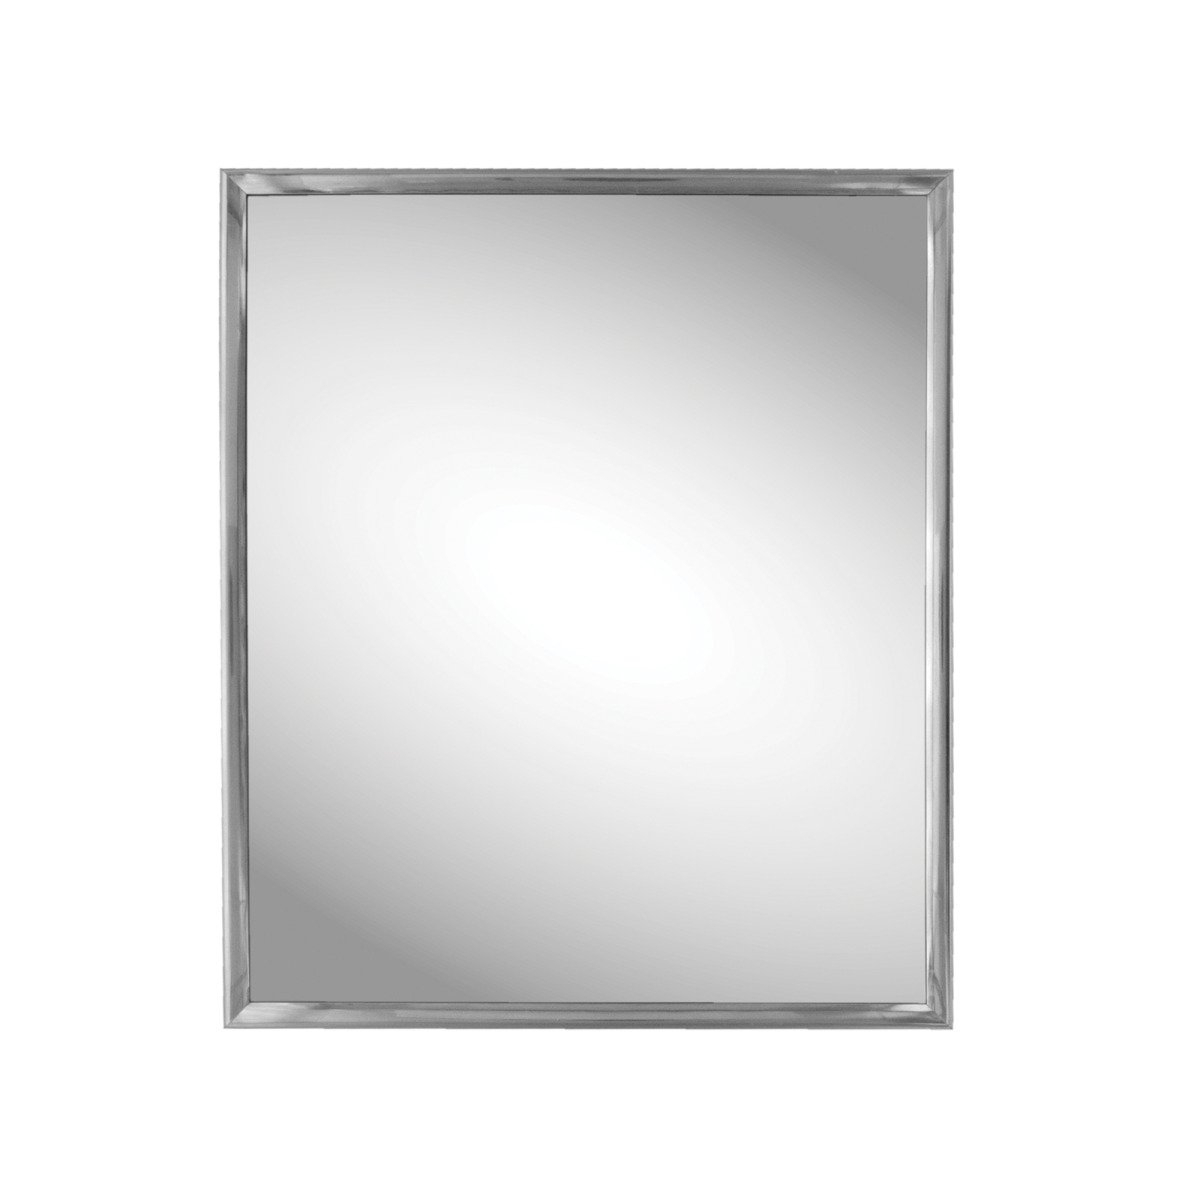 """Best And Newest Lightweight Wall Mirrors Within Andalus Wall Mirror With Silver Frame (2 Pack), 10"""" X 12"""" Inches, Includes Picture Hanging Kit, Lightweight And Easy To Install (View 12 of 20)"""